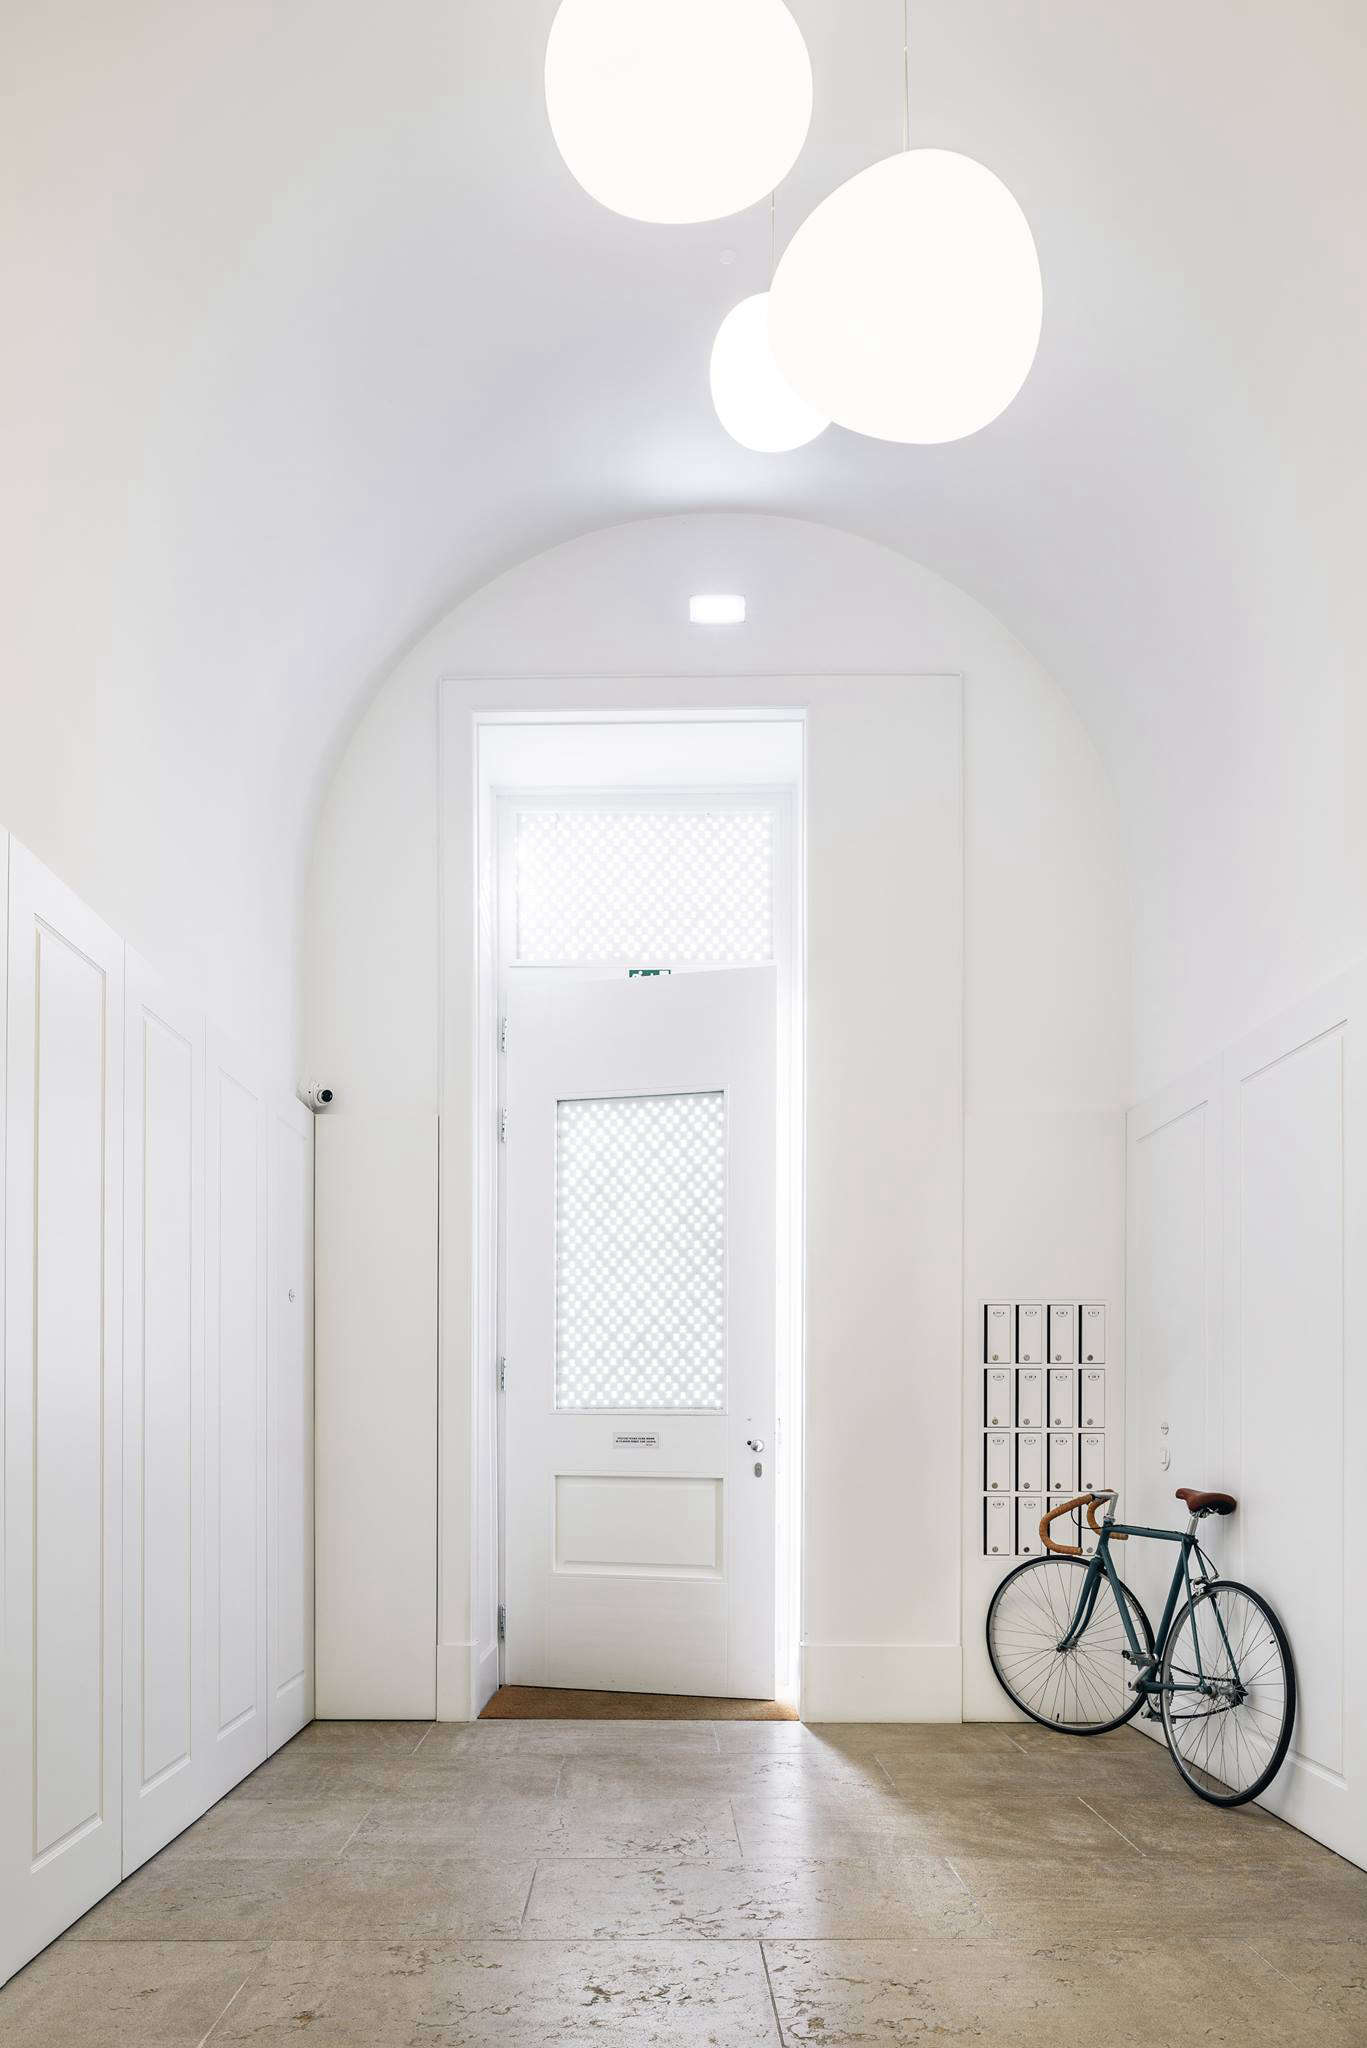 The all-white entryway, with a bicycle available for rent. The original detailing and soaringceilings of the factory were preserved throughout.